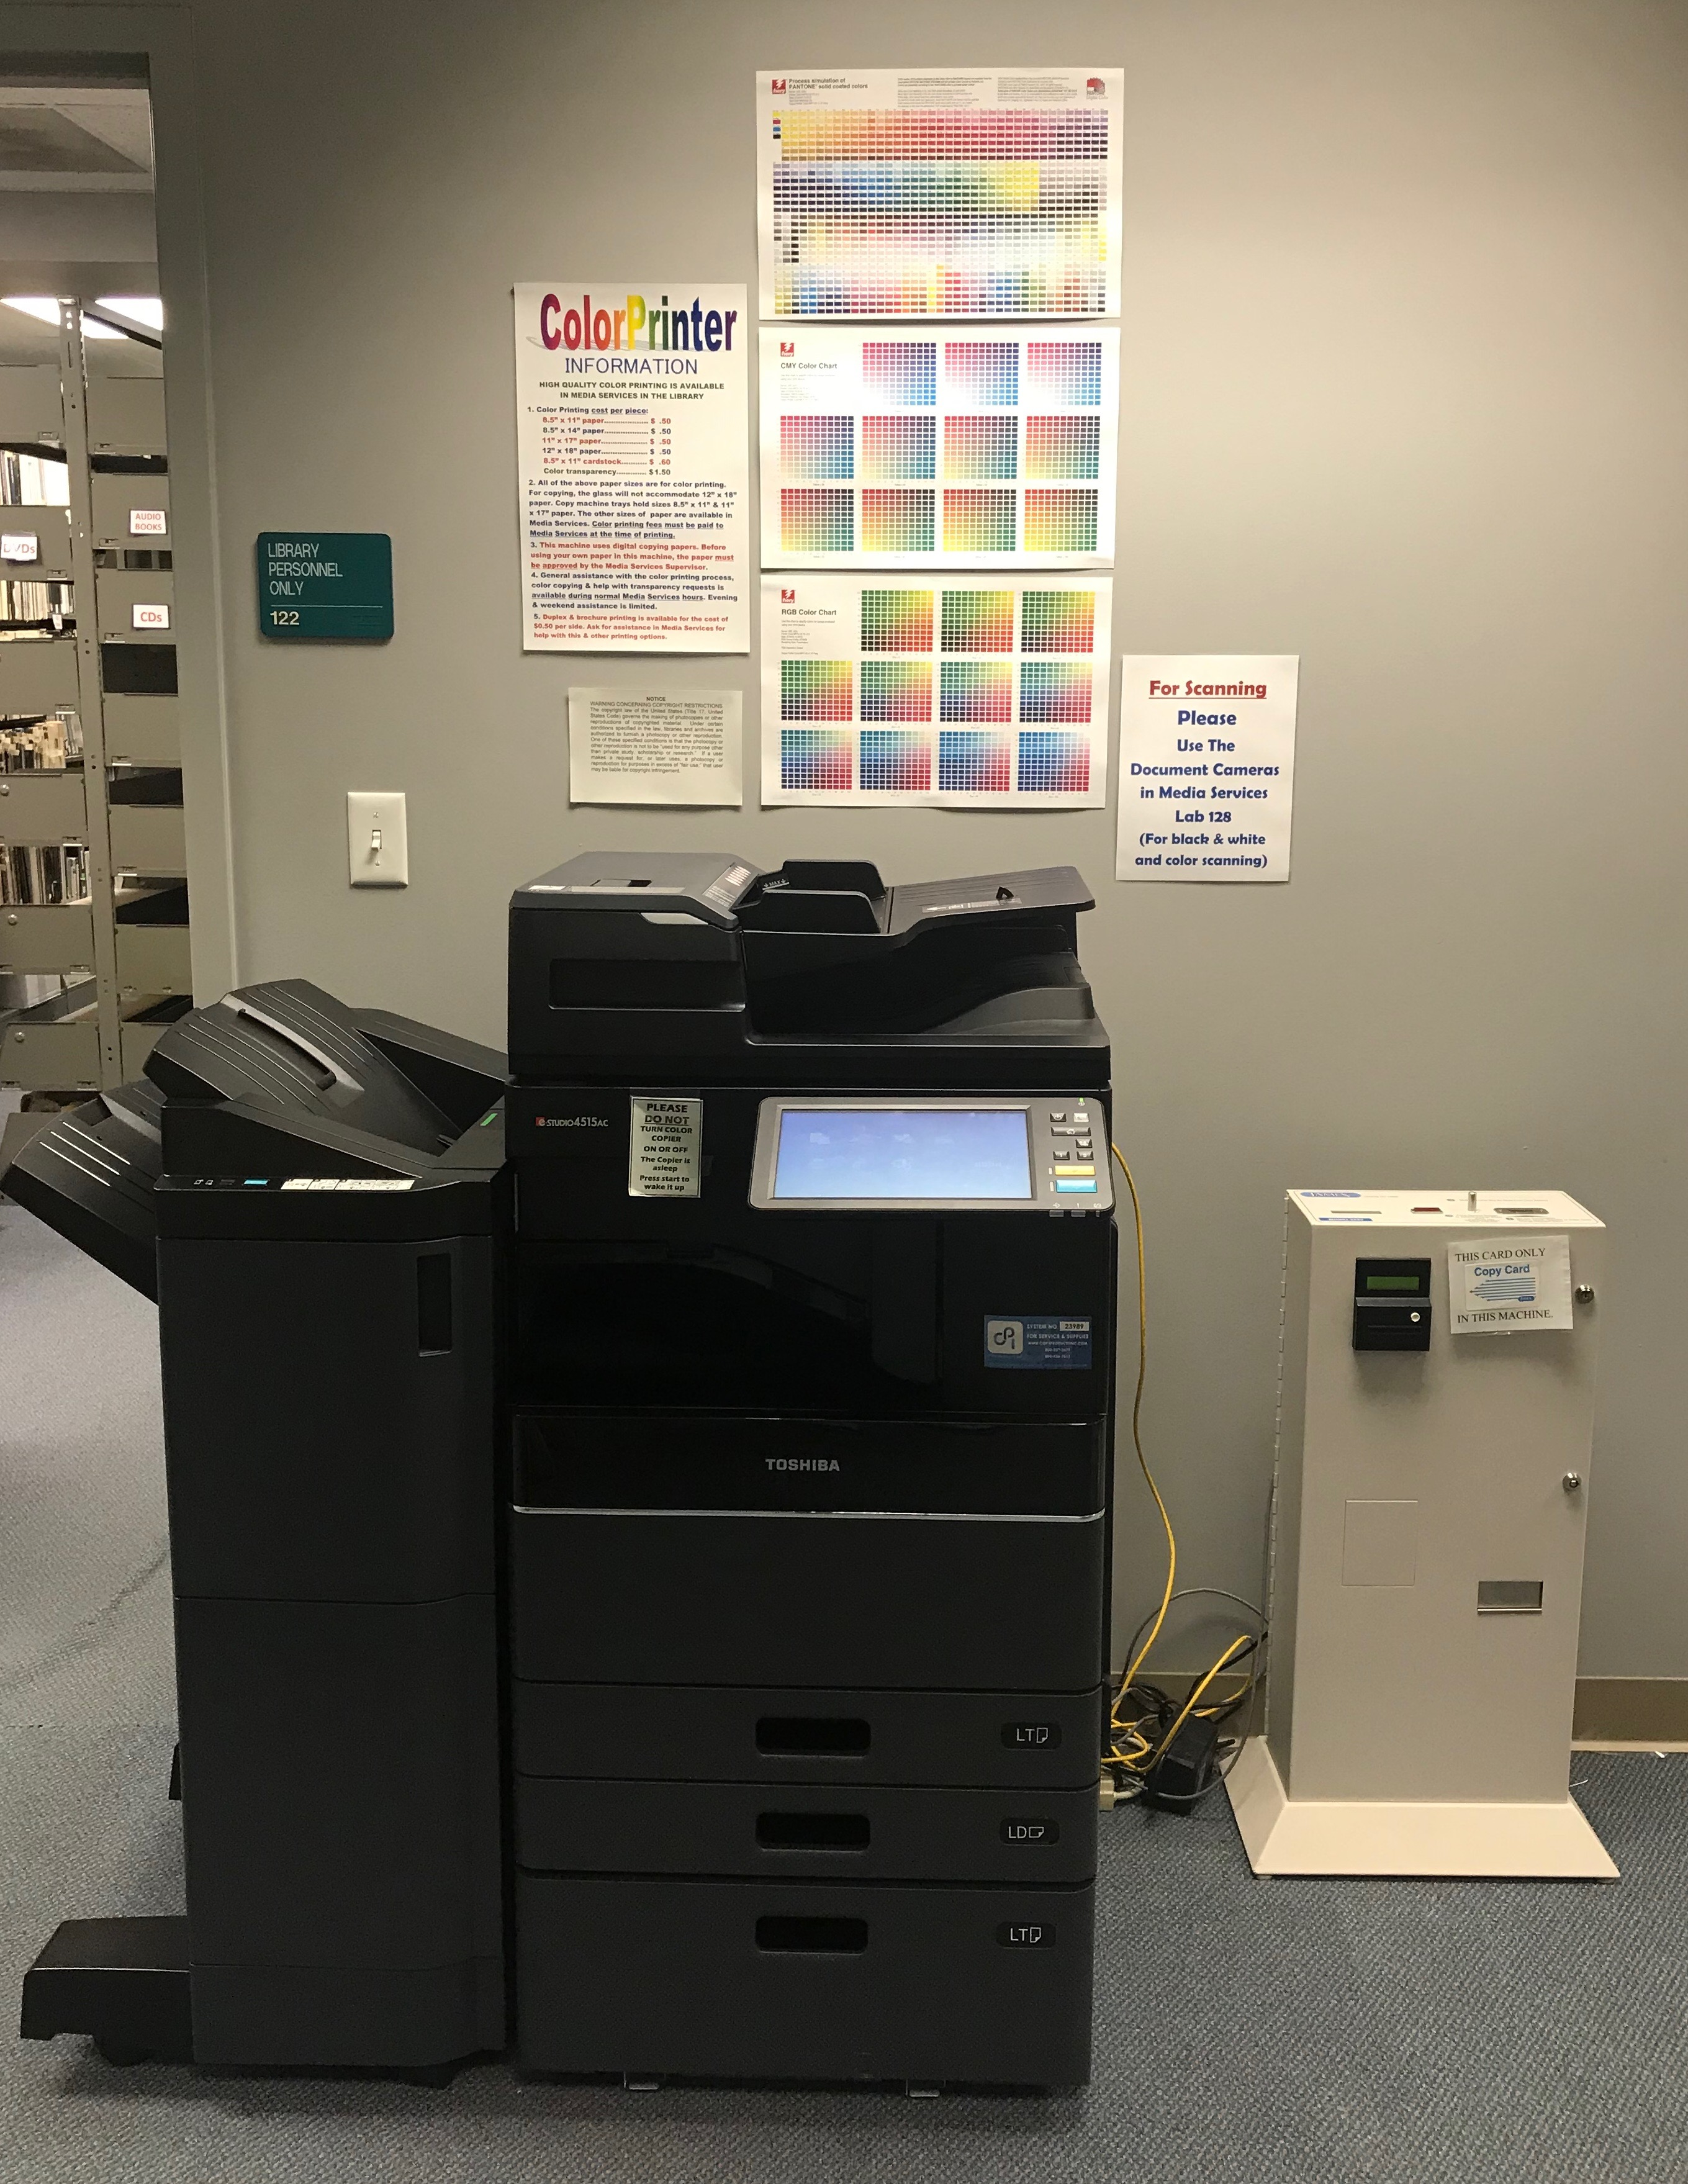 Color copier located in Media Services